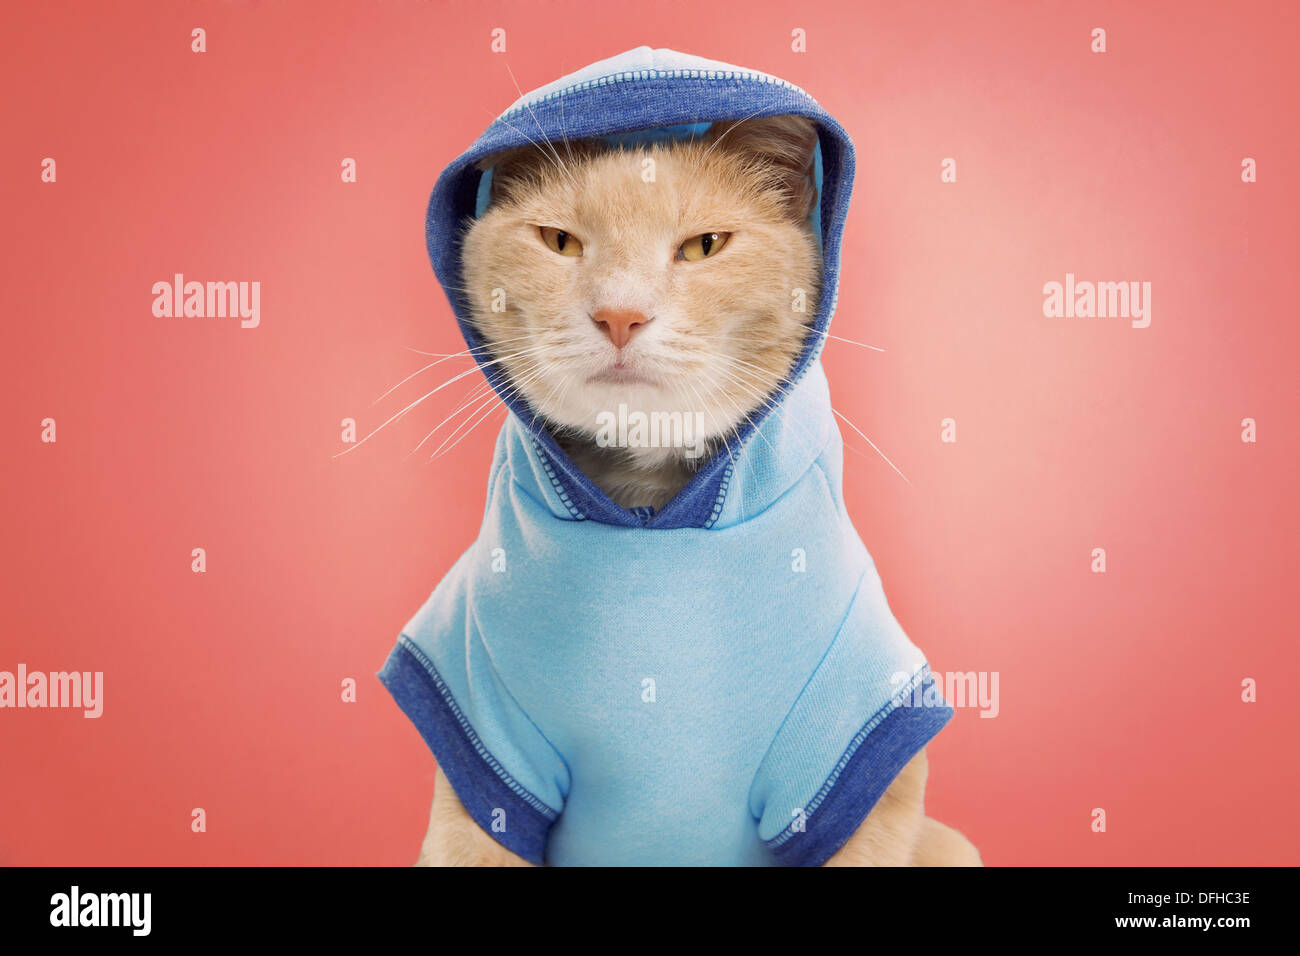 studio portrait of ginger cat wearing two tone blue sweatshirt with hoodie - Stock Image